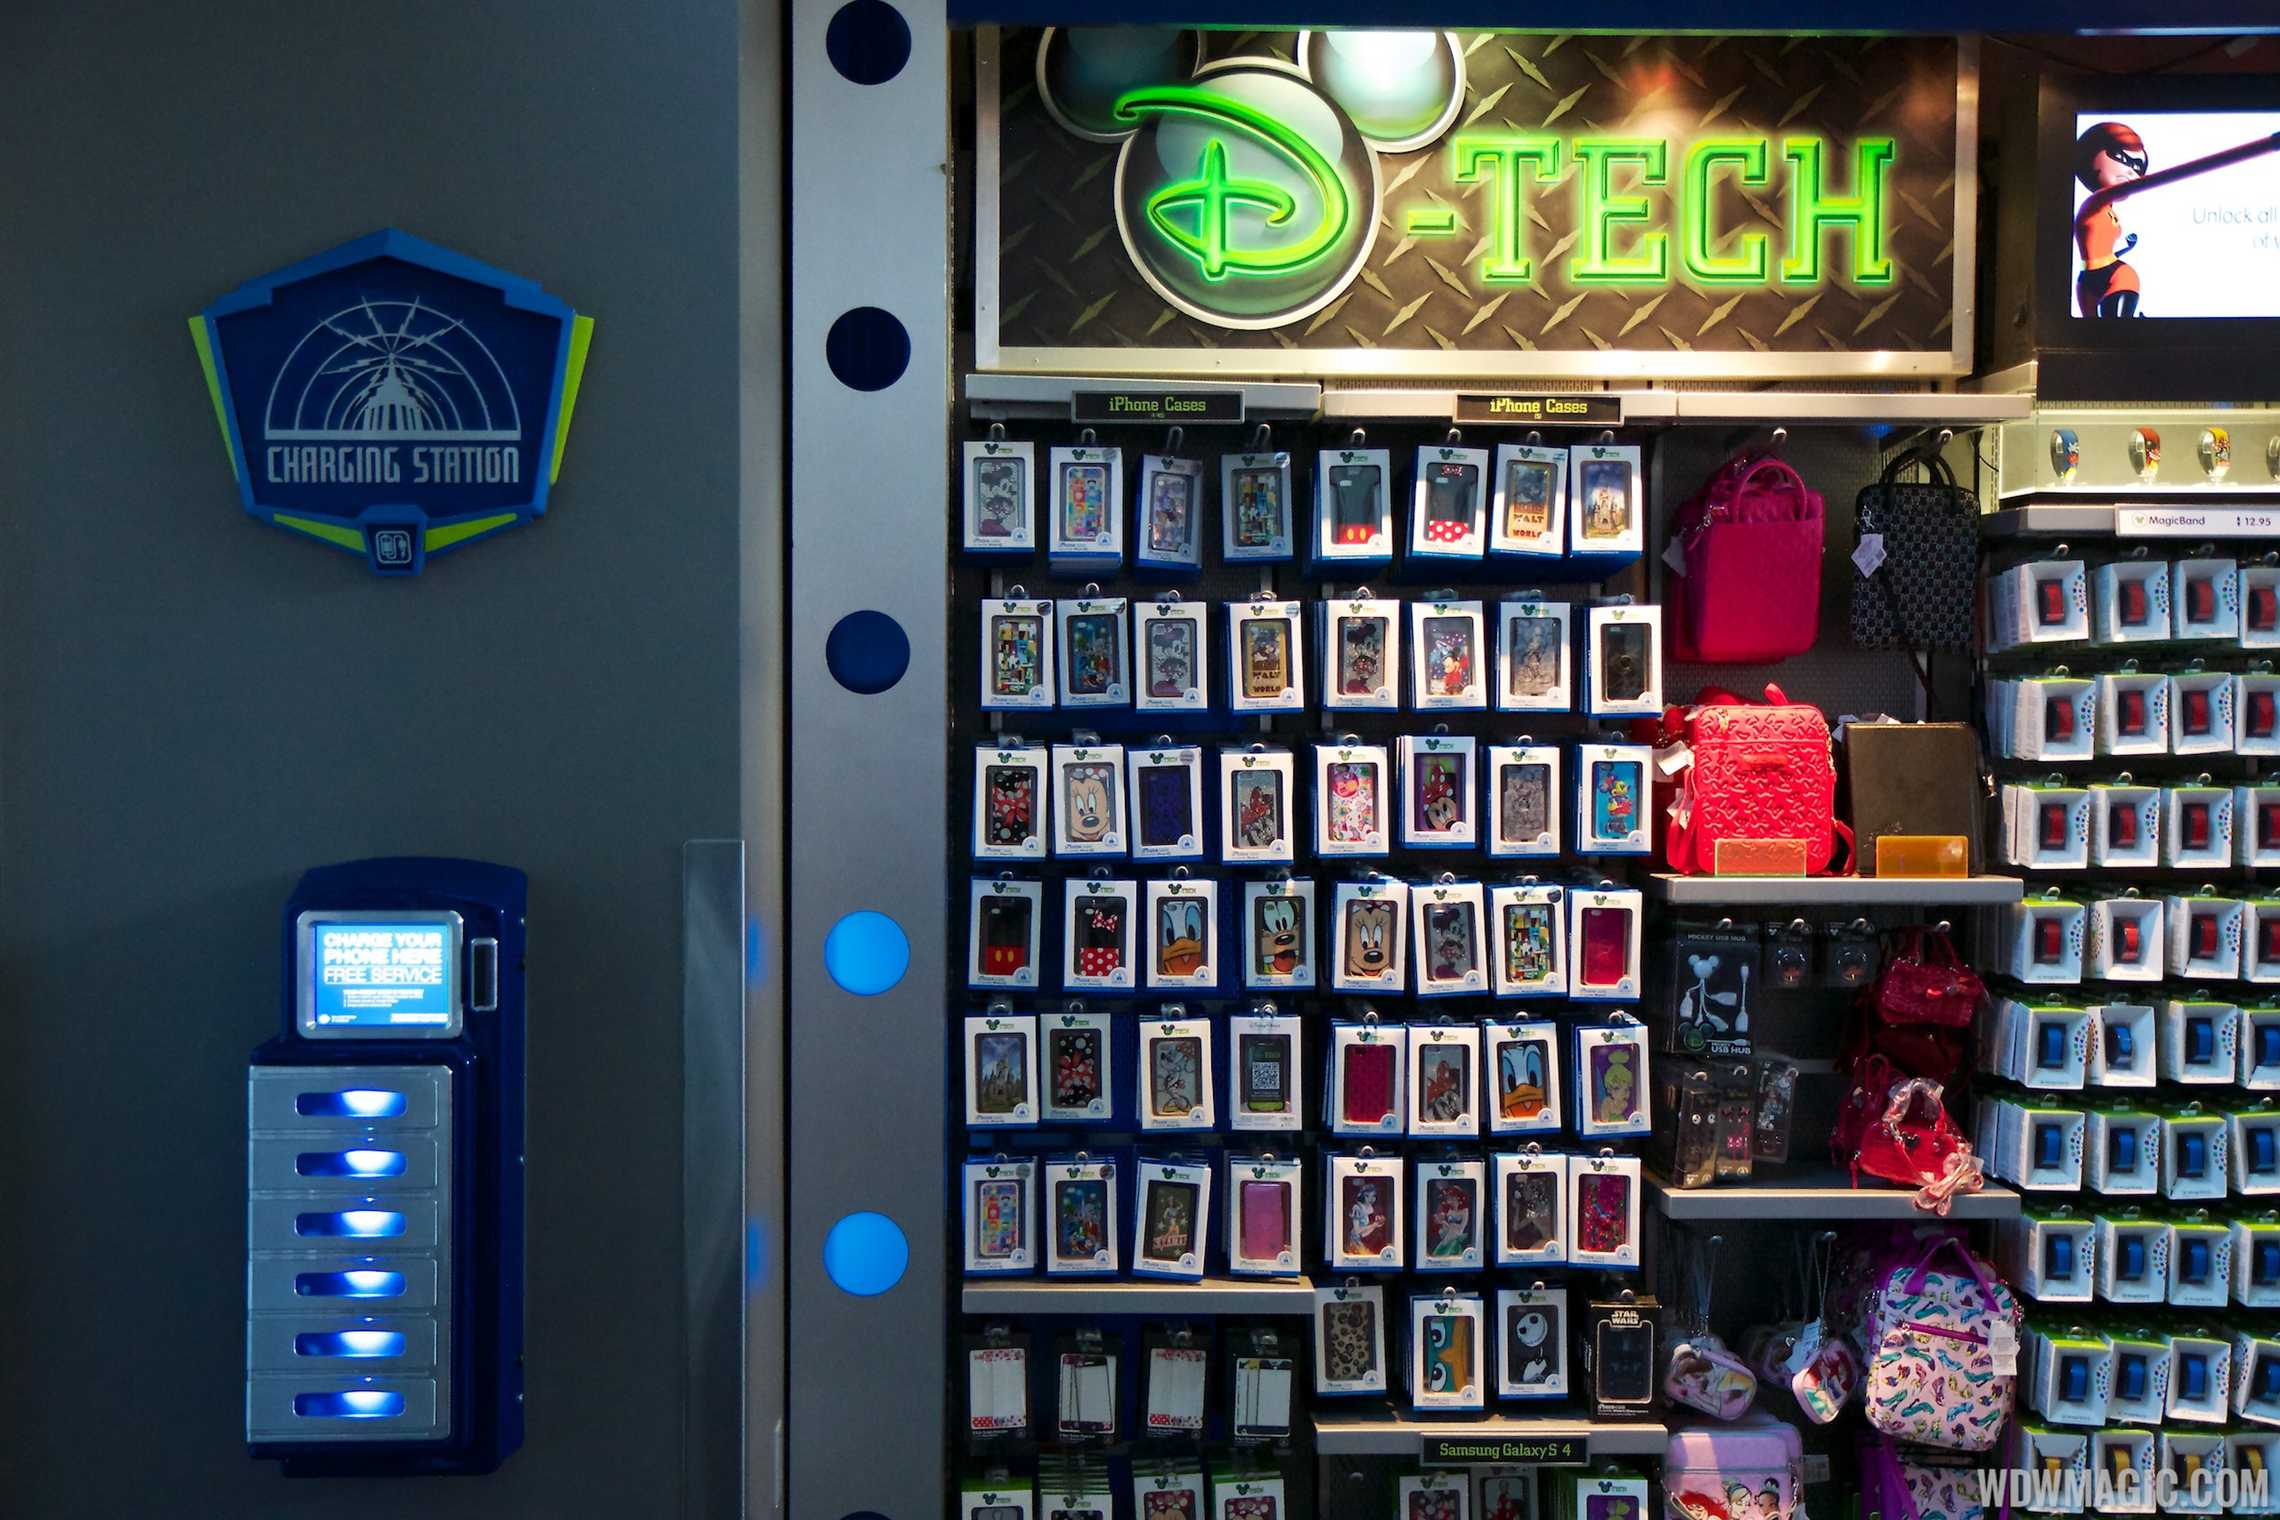 The Space Mountain gift shop charging station